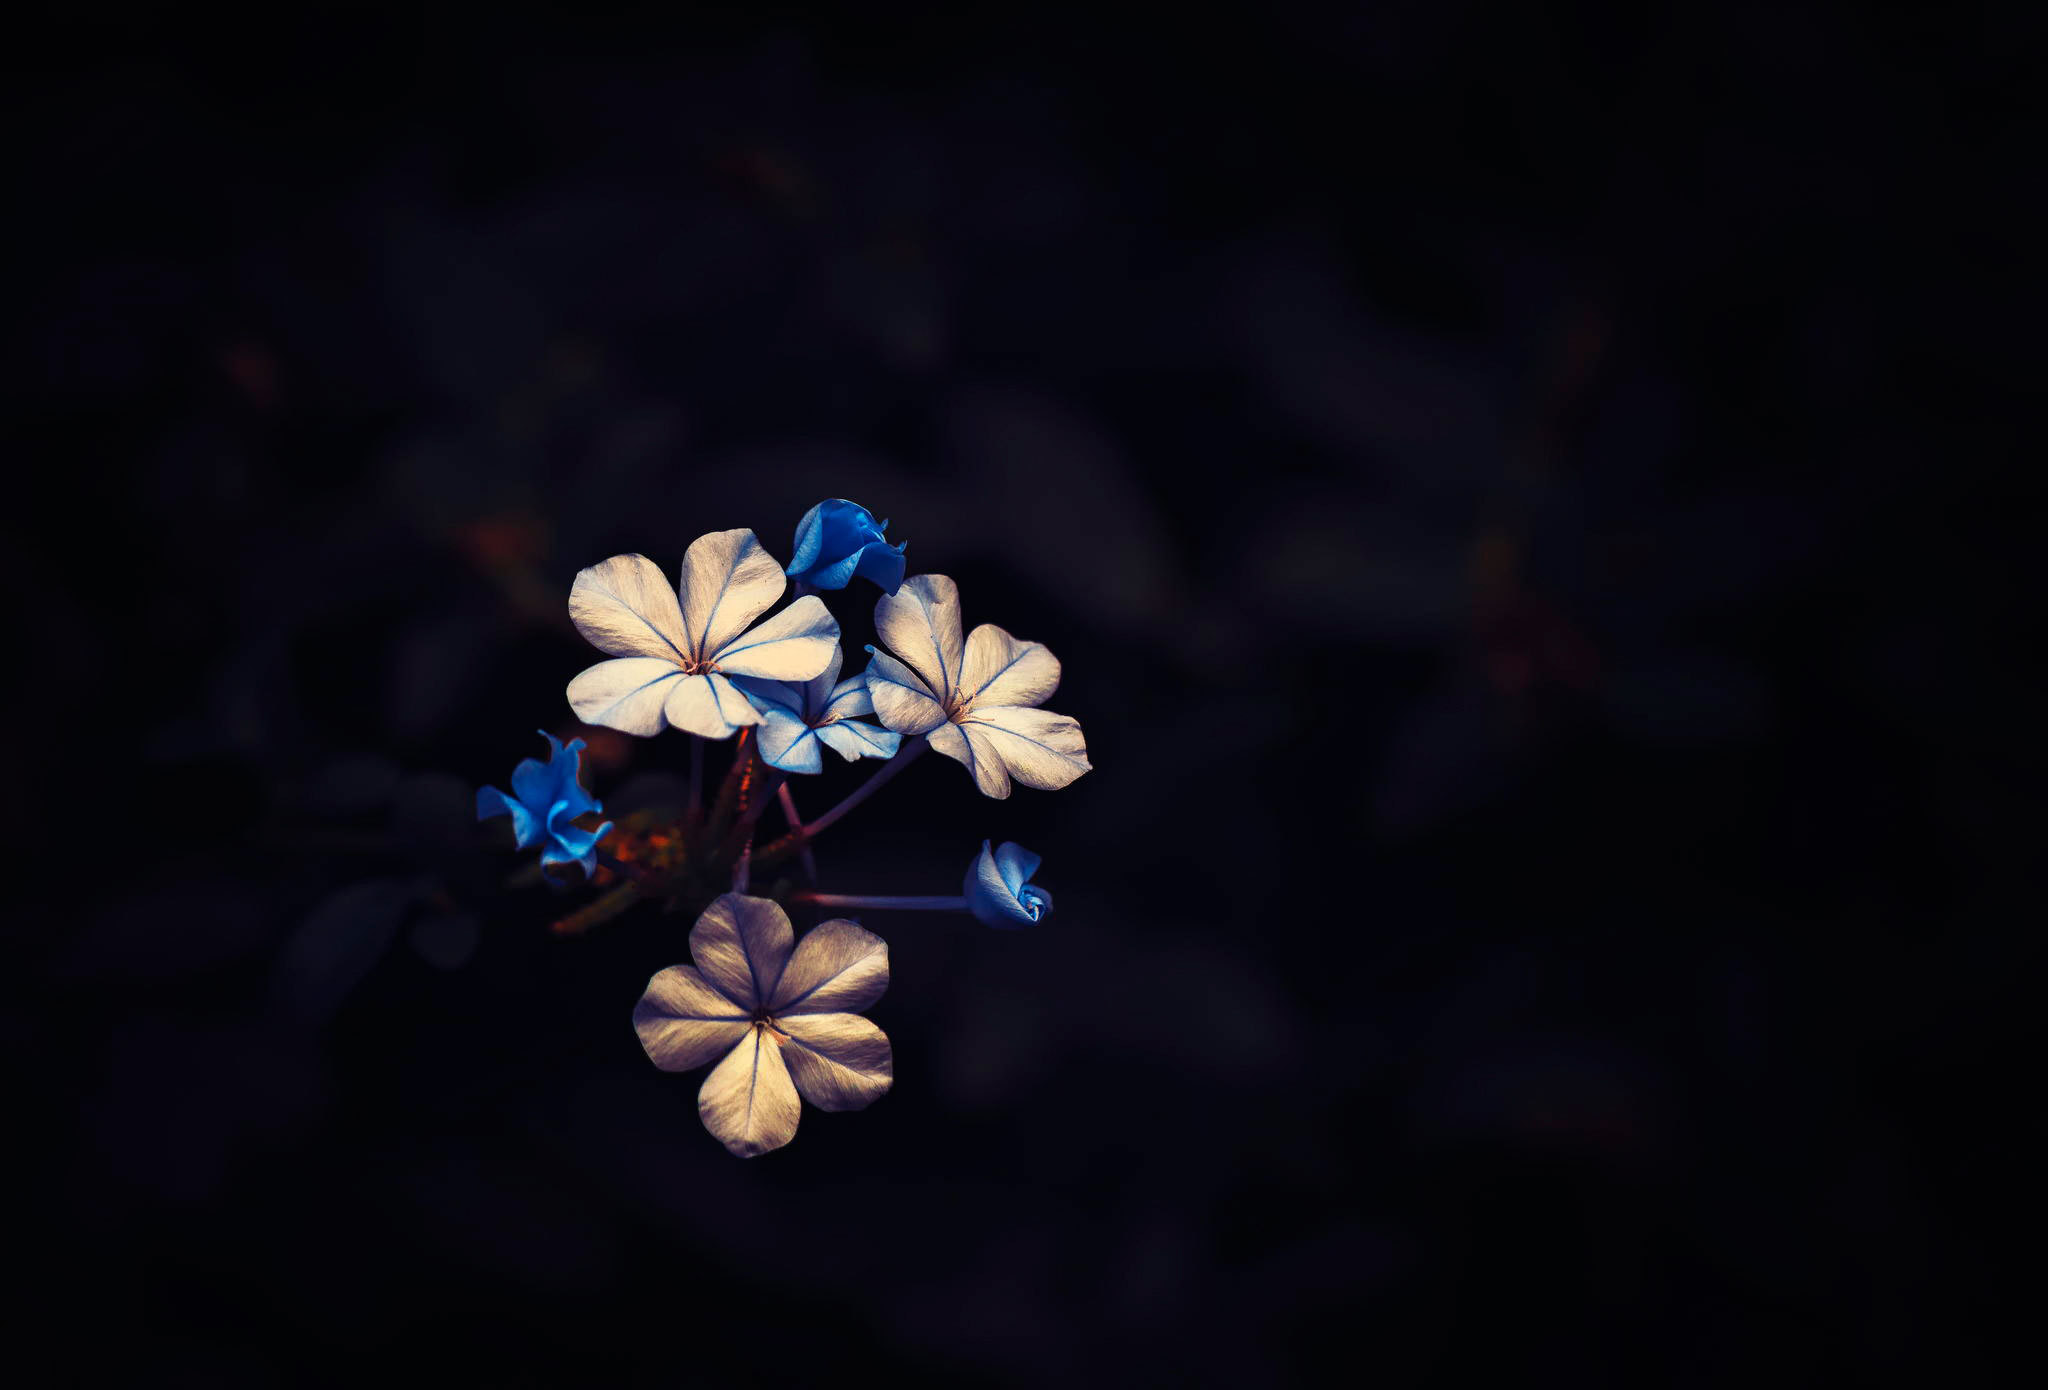 Flowers On Black Background Wallpaper 77 Images